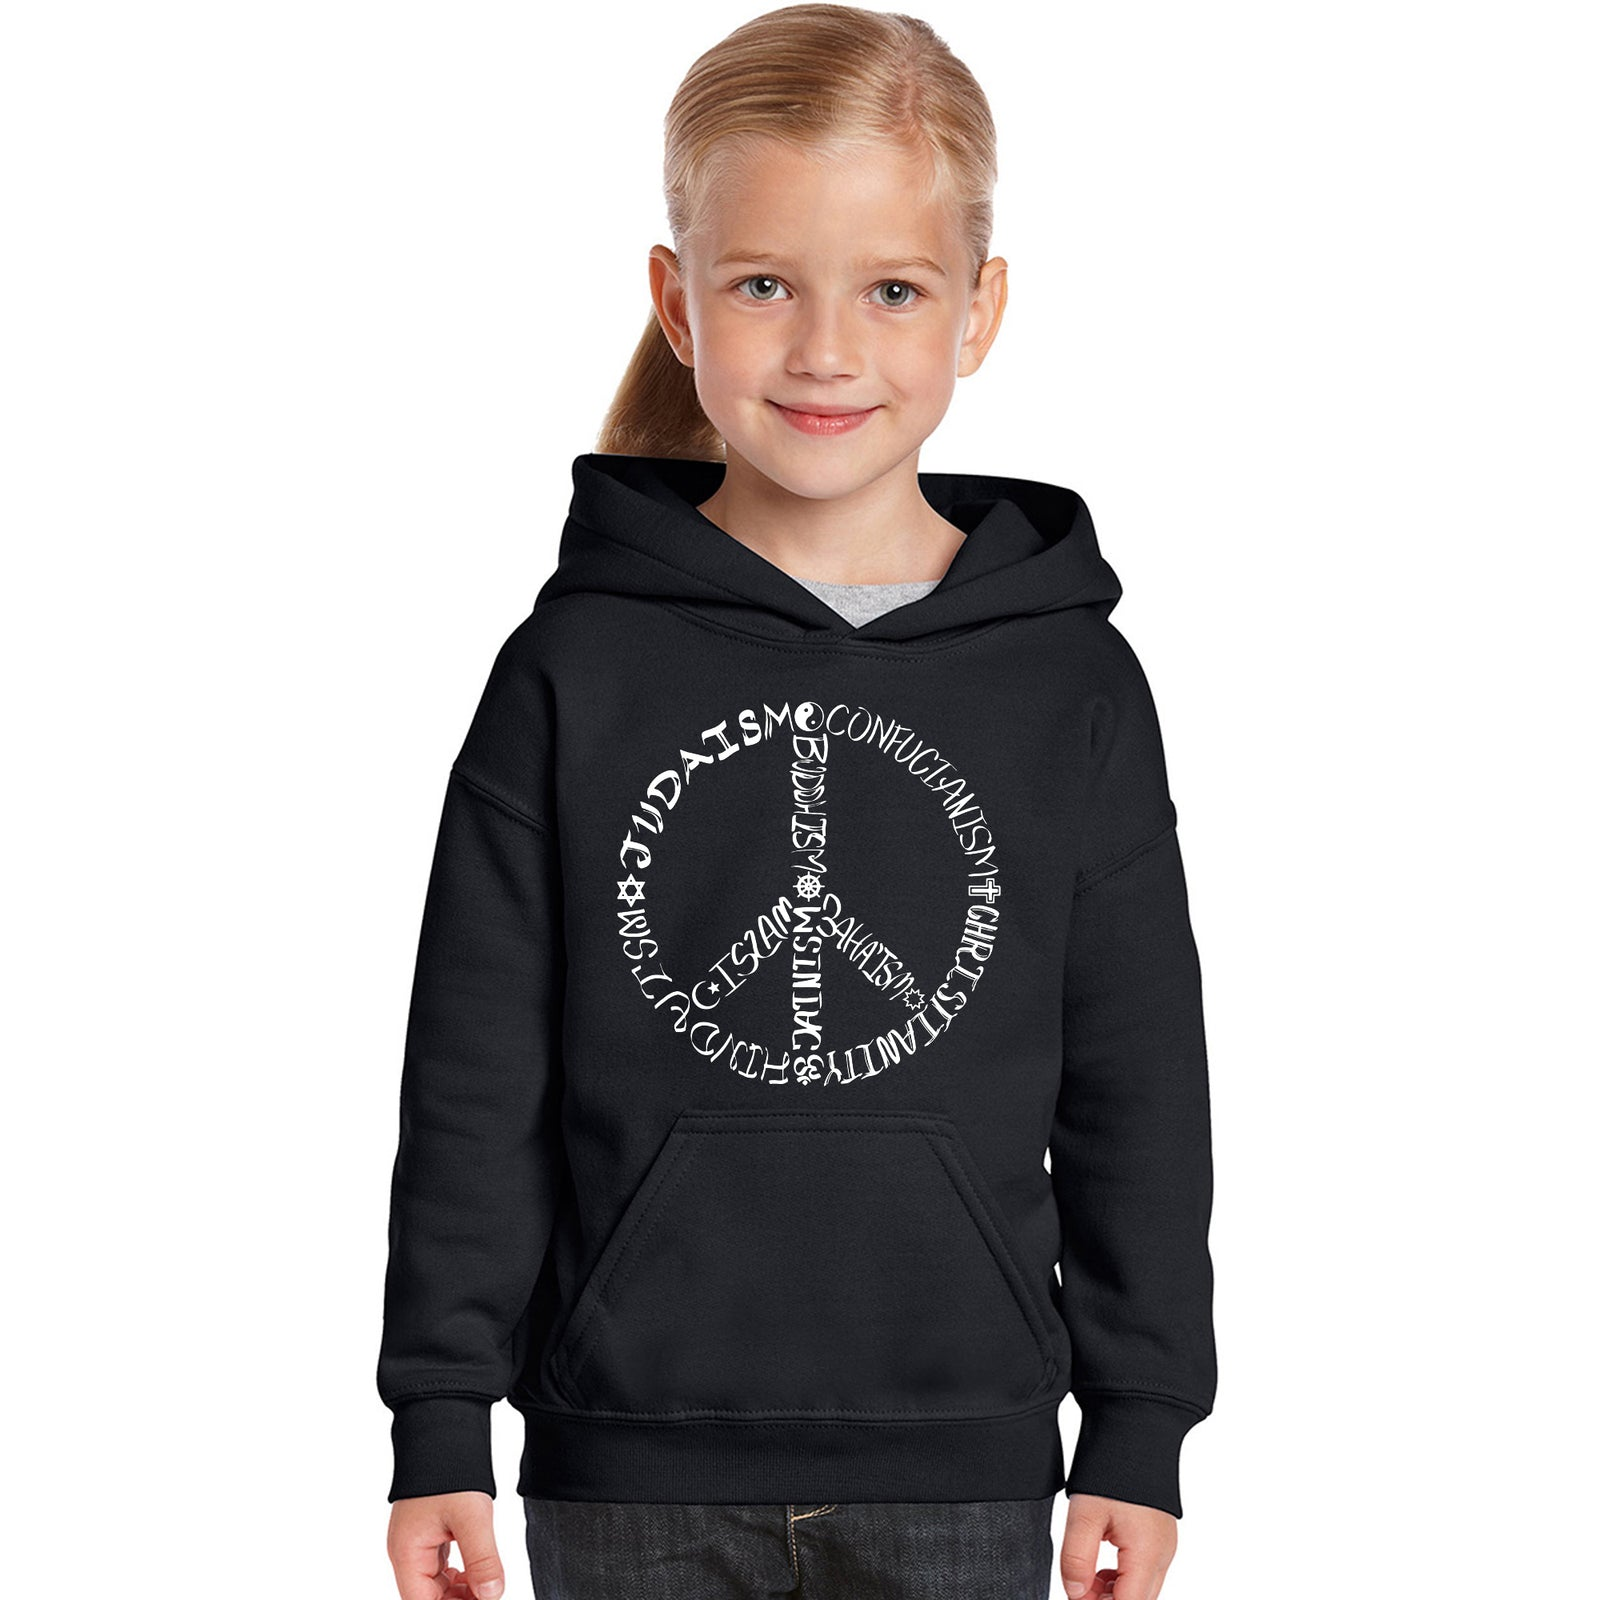 Girl's Hooded Sweatshirt - Different Faiths peace sign